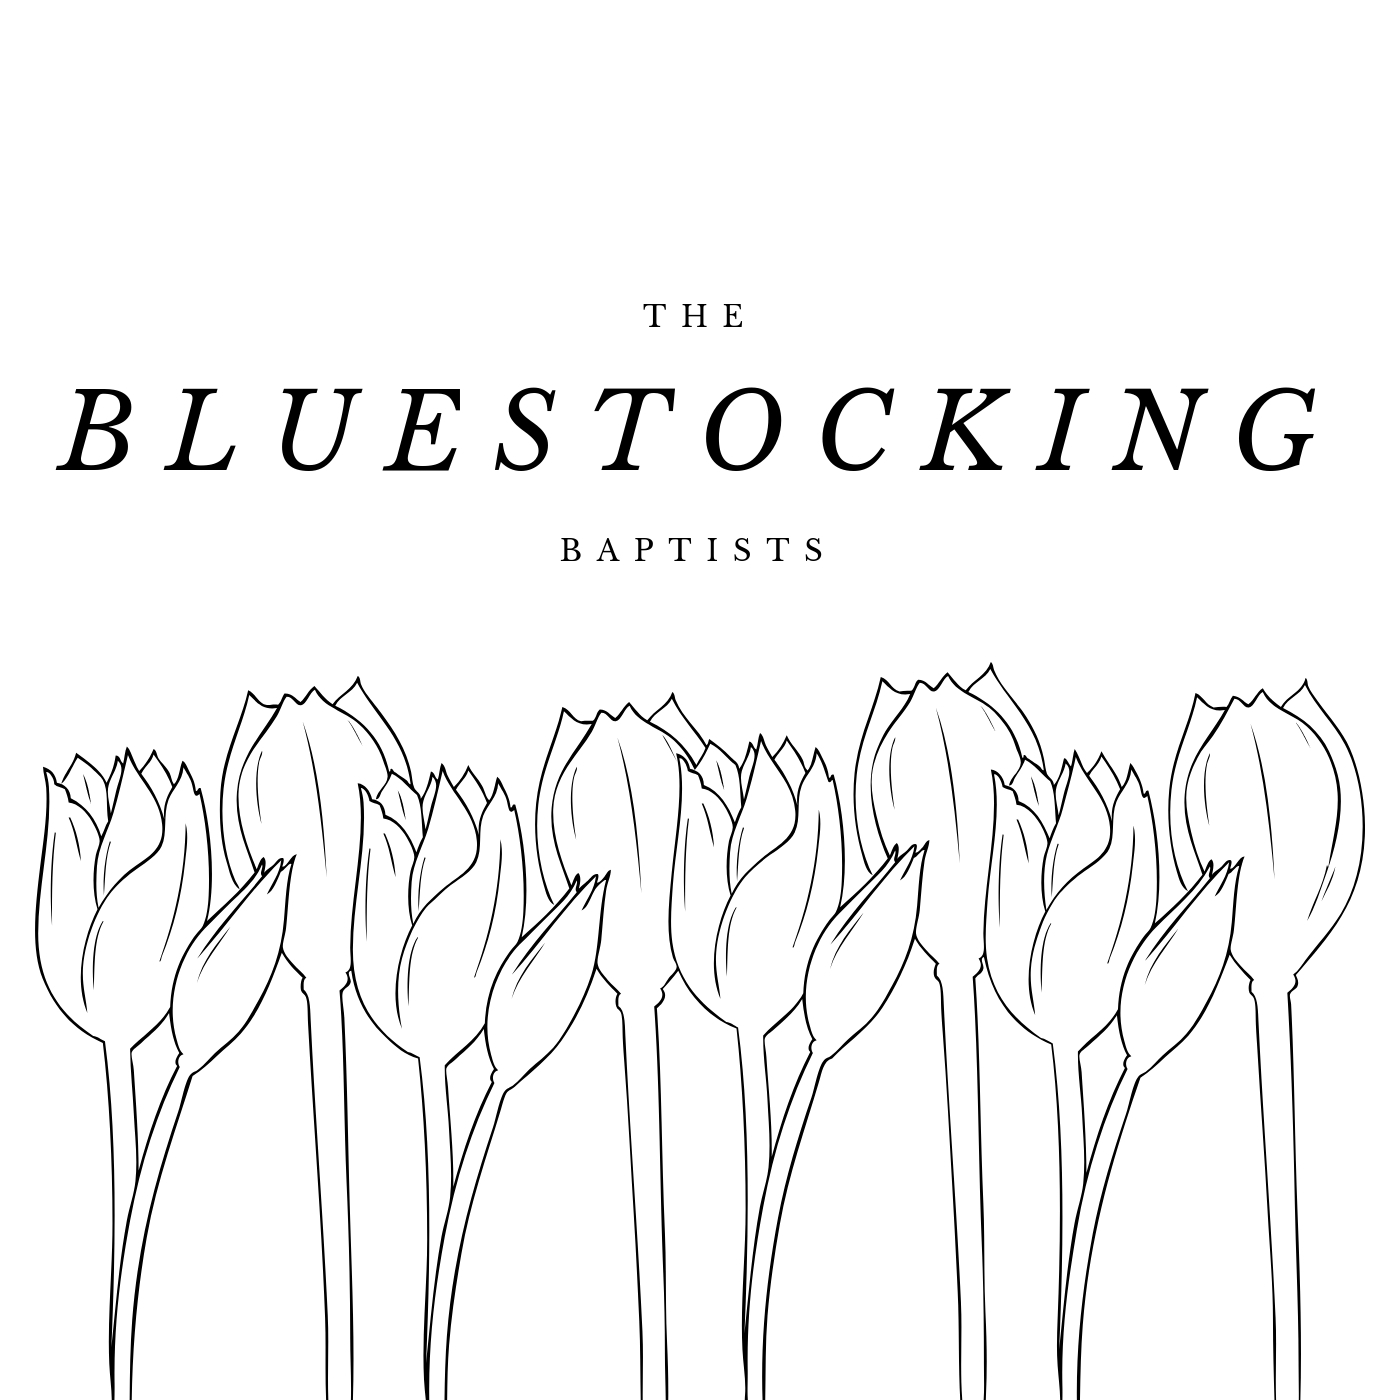 The Bluestocking Baptists